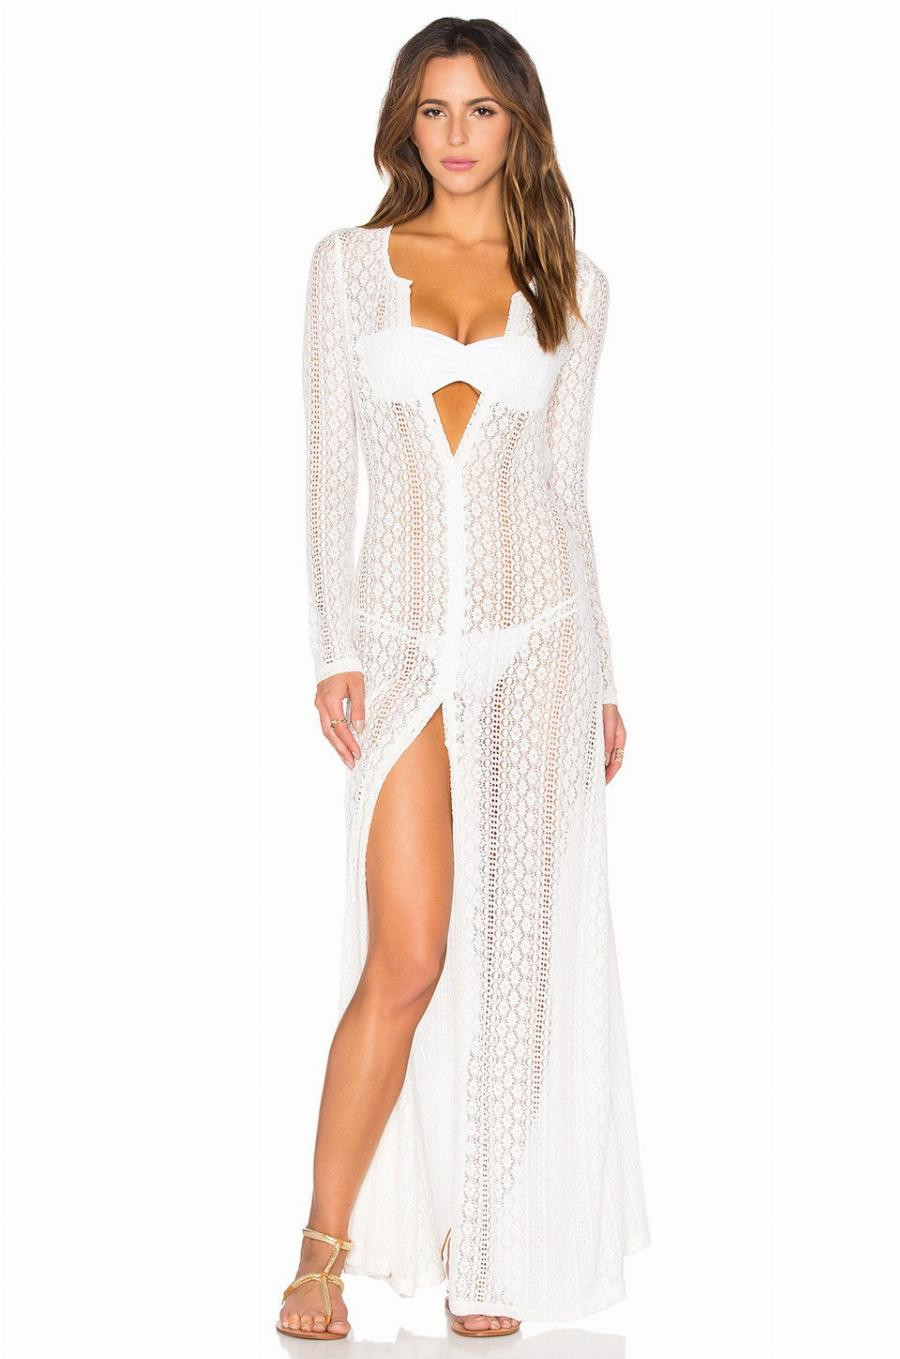 White Crochet Coverup Best Of Summer Style Women Hollow Out Bathing Suit Swimsuit Cover Of Unique 50 Models White Crochet Coverup